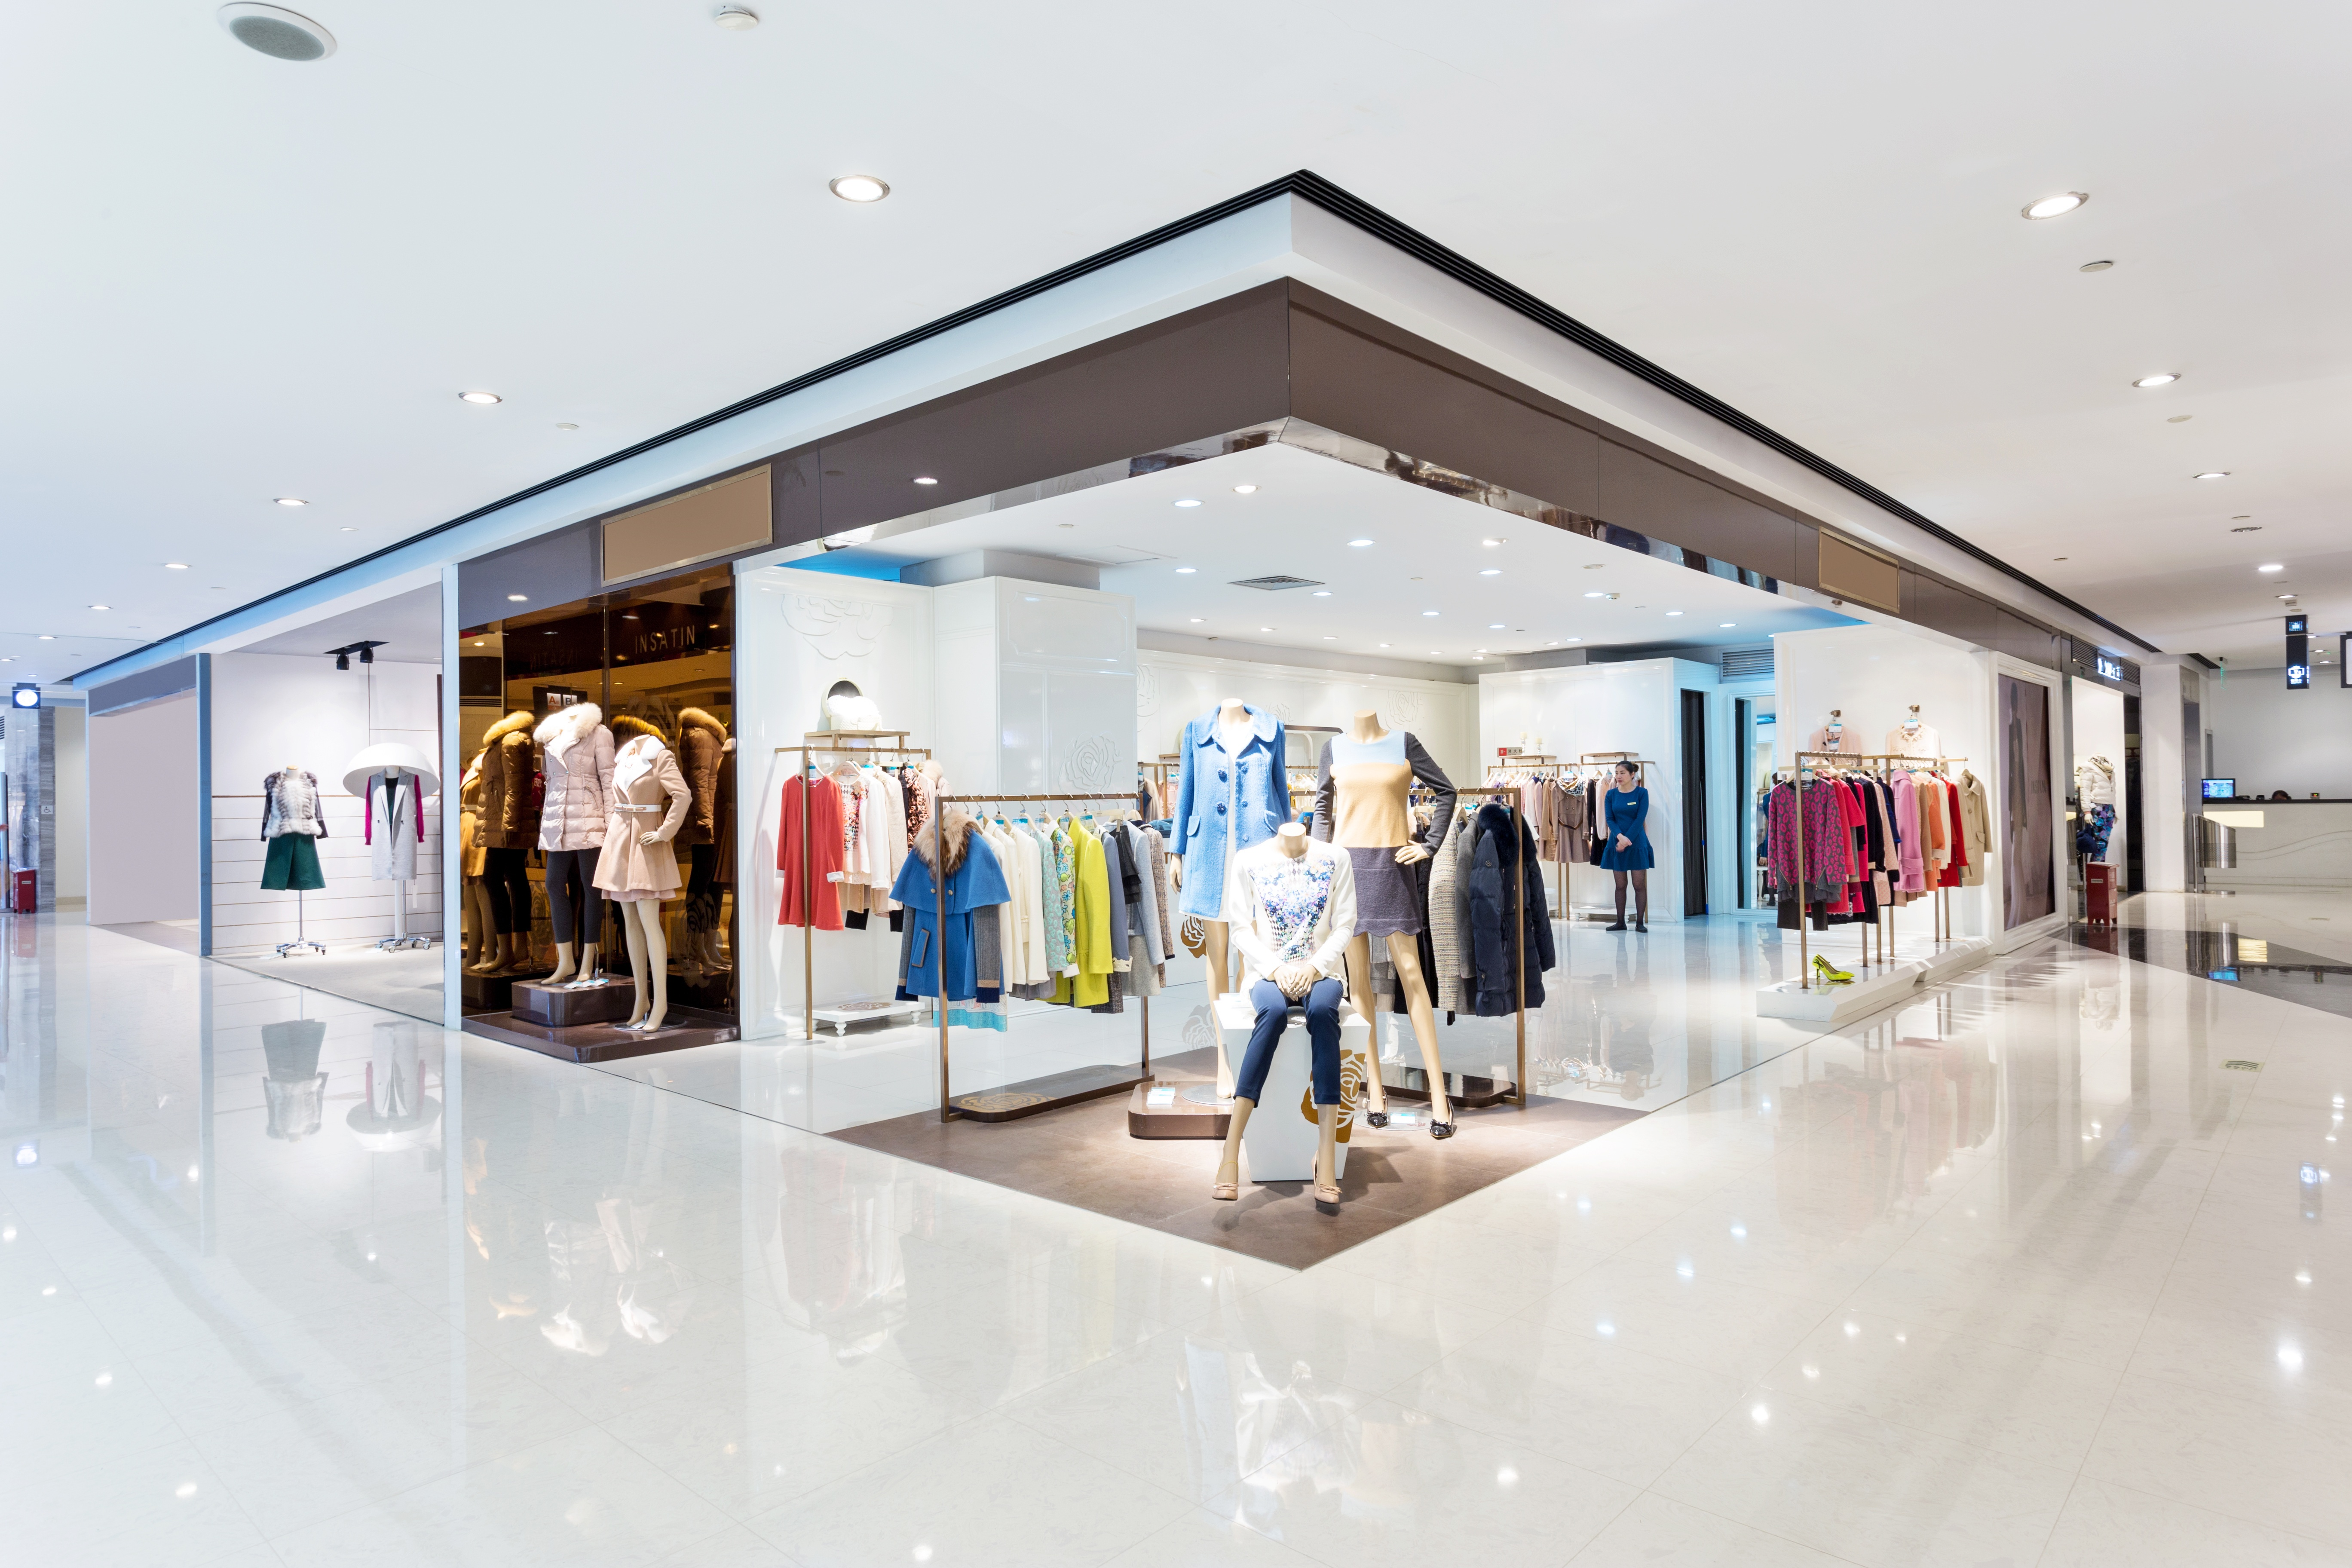 Image of interior of shopping mall to help show what mystery shopping is.